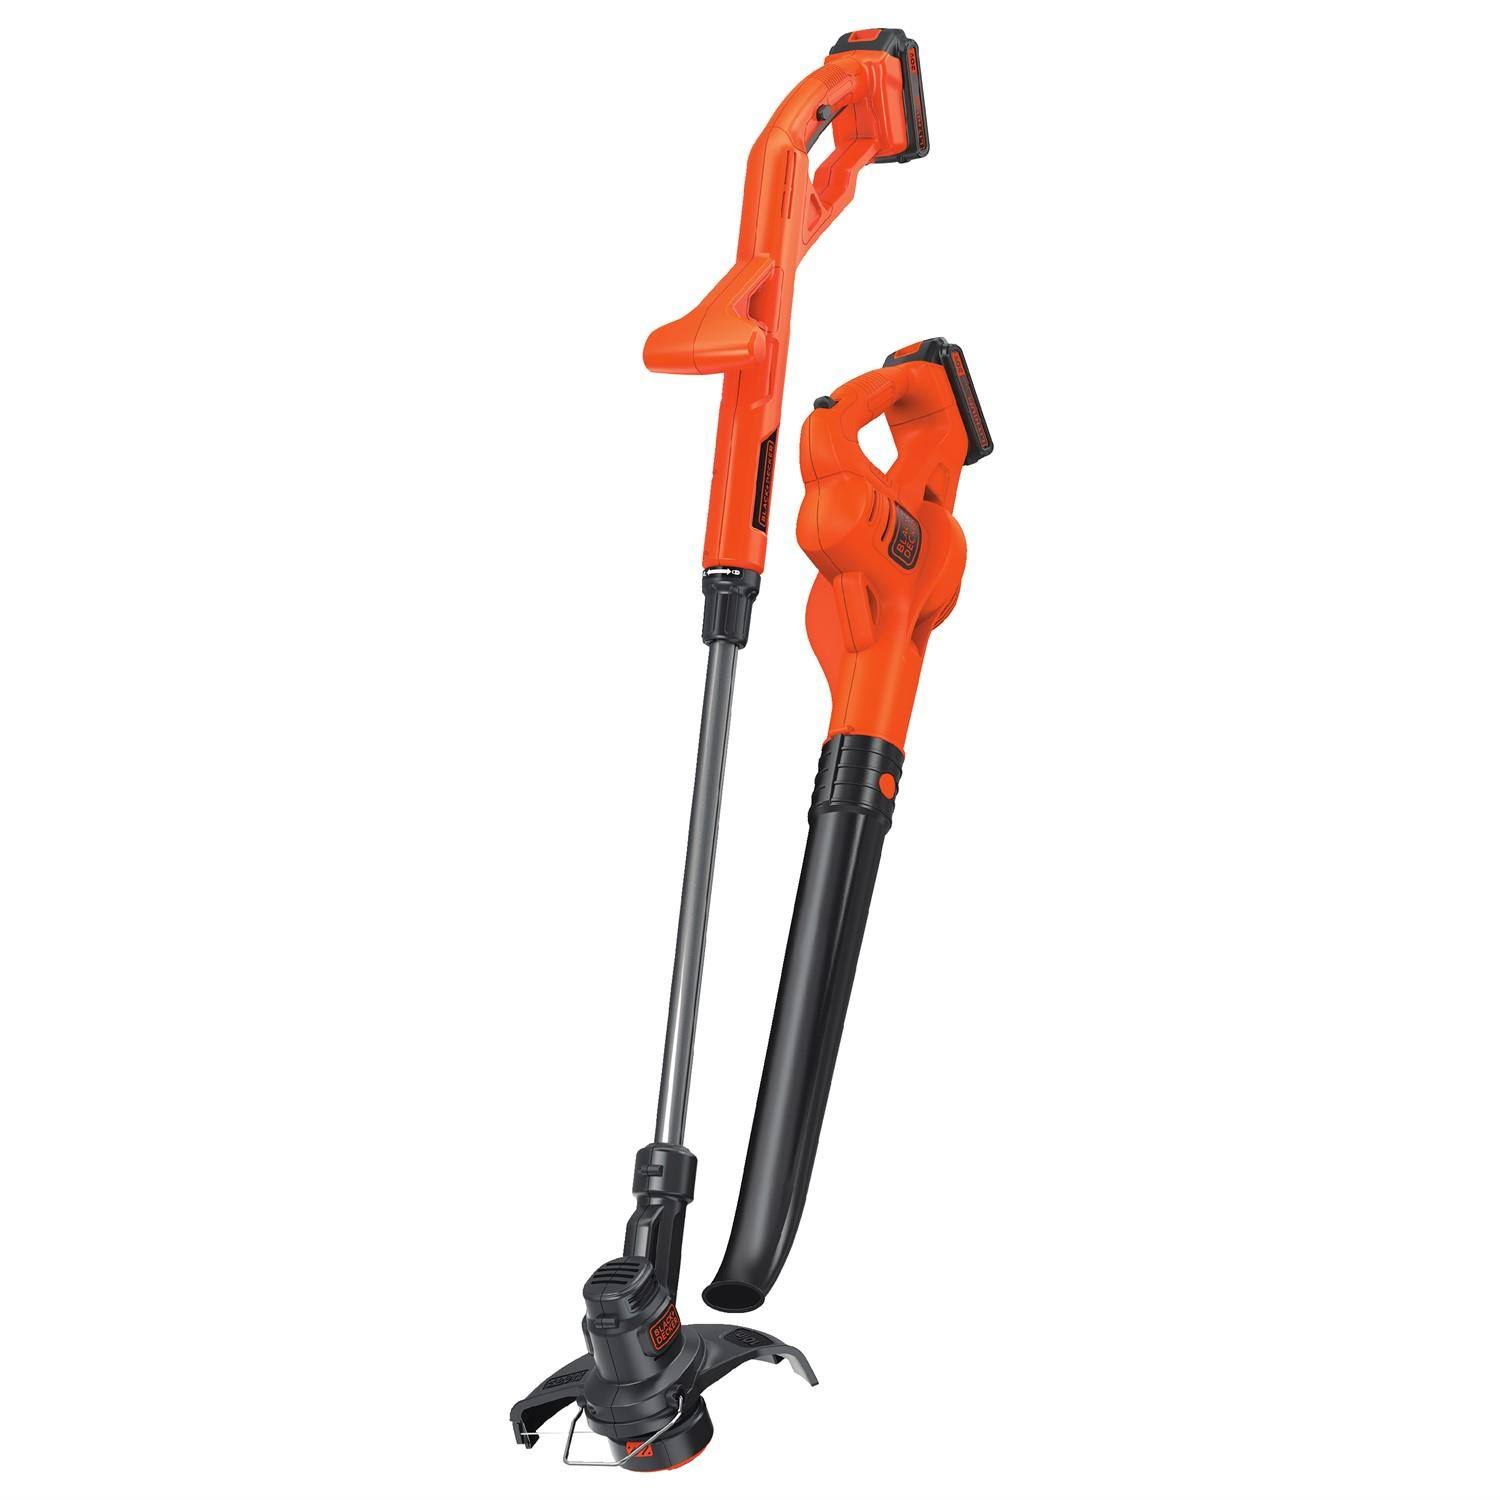 Black & Decker Lcc420 Lithium String Trimmer Sweeper - 20V, Orange